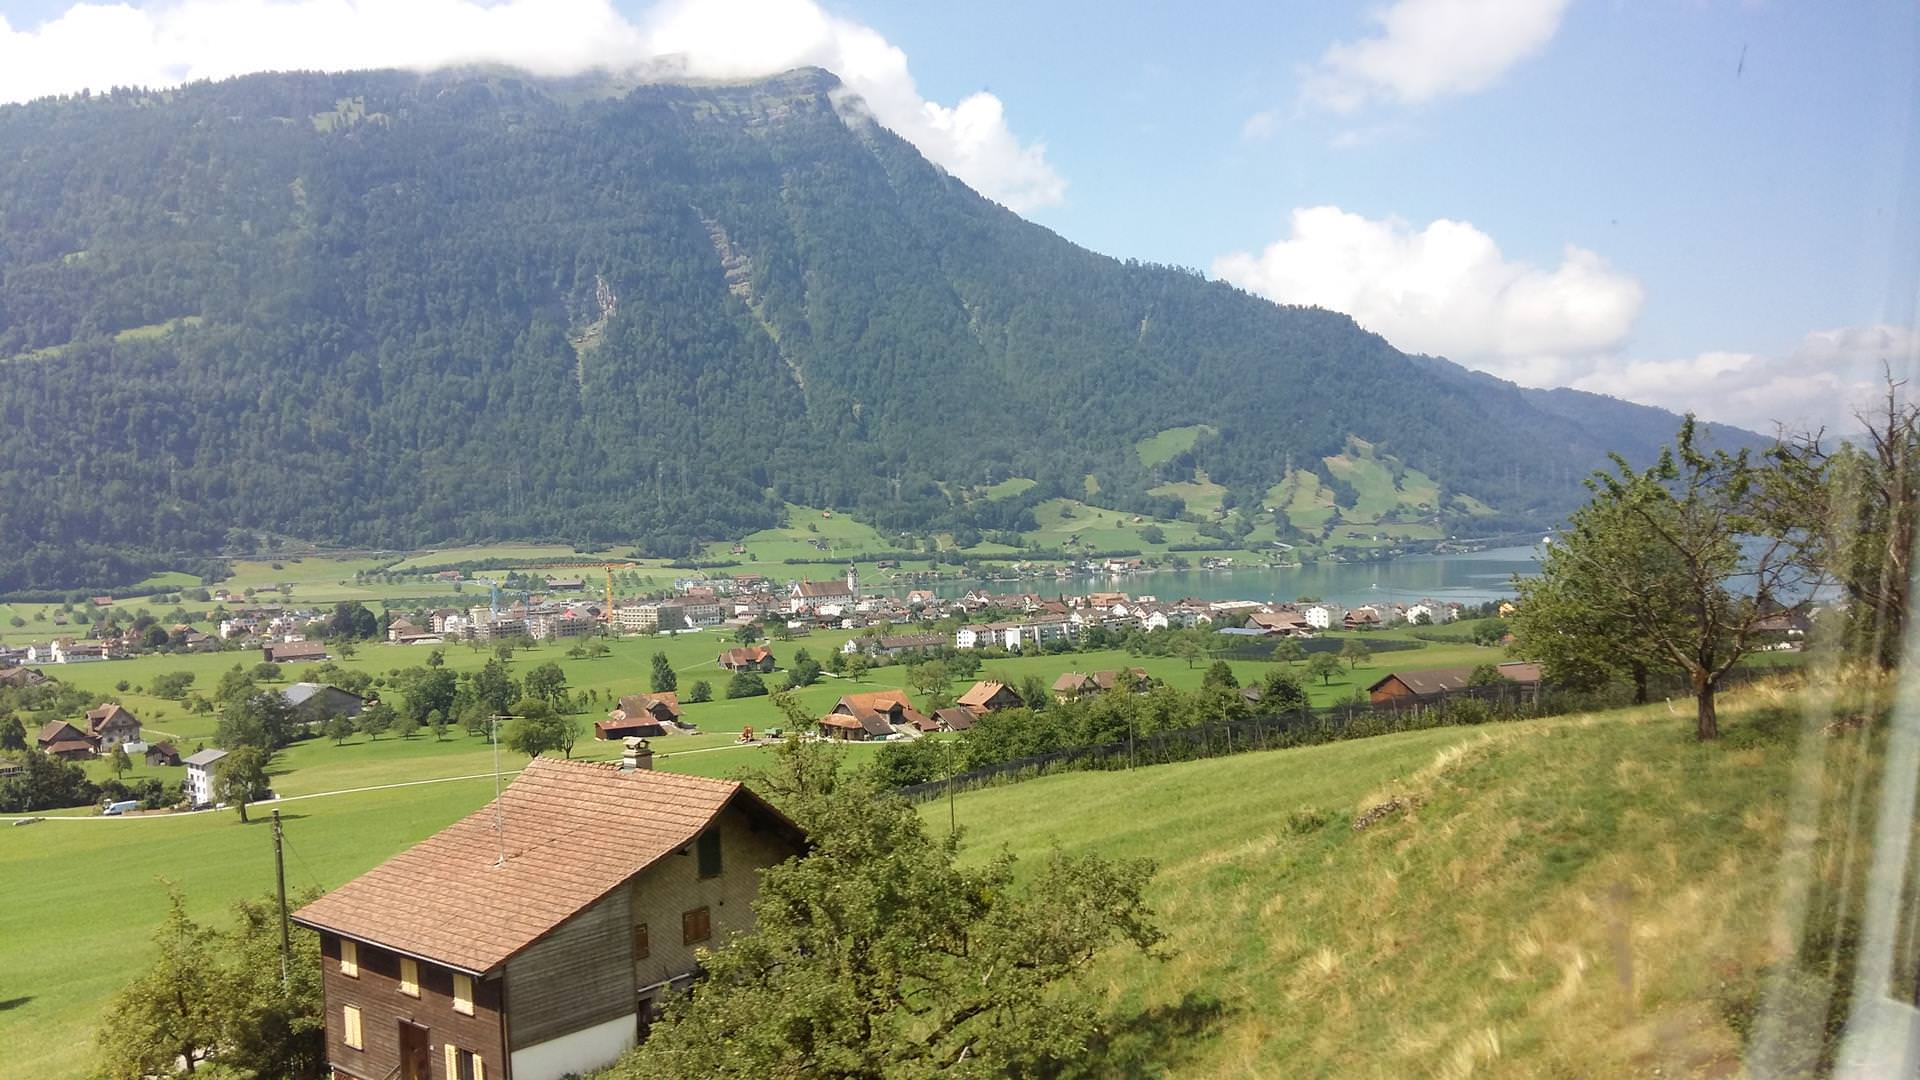 The view of Goldau on the way. Goldau is located on a lake between the mountains: Rossberg and Rigi.